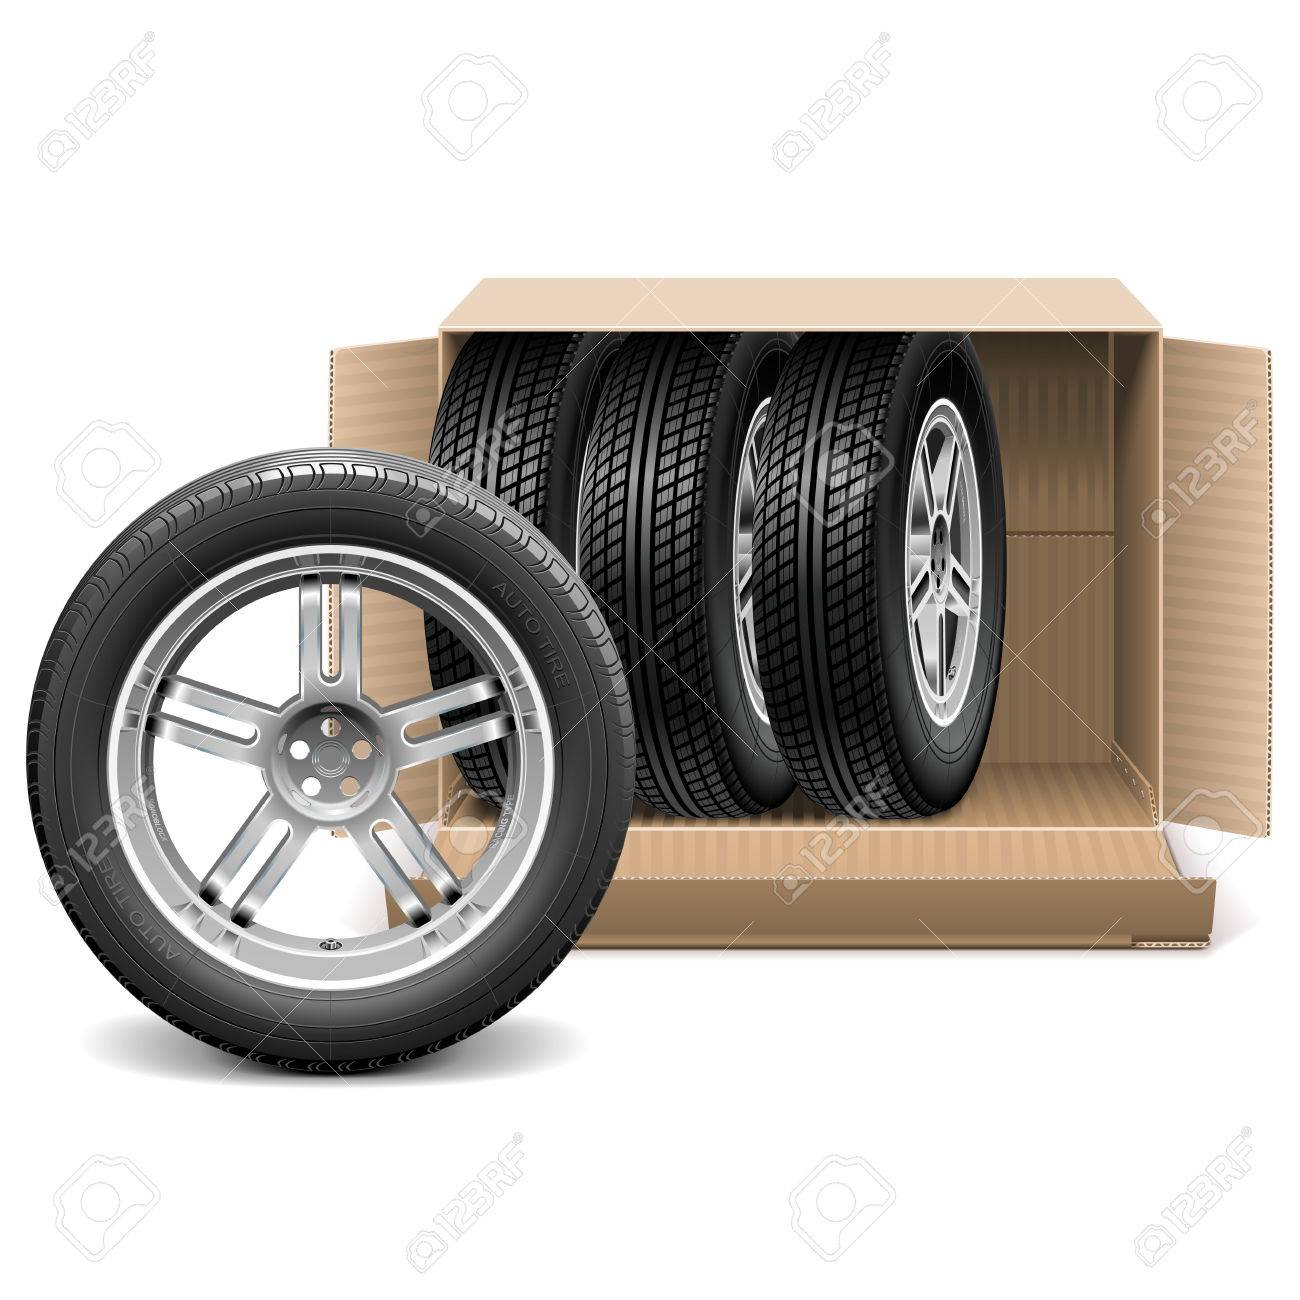 Vector Car Wheels In Carton Box Isolated On White Background